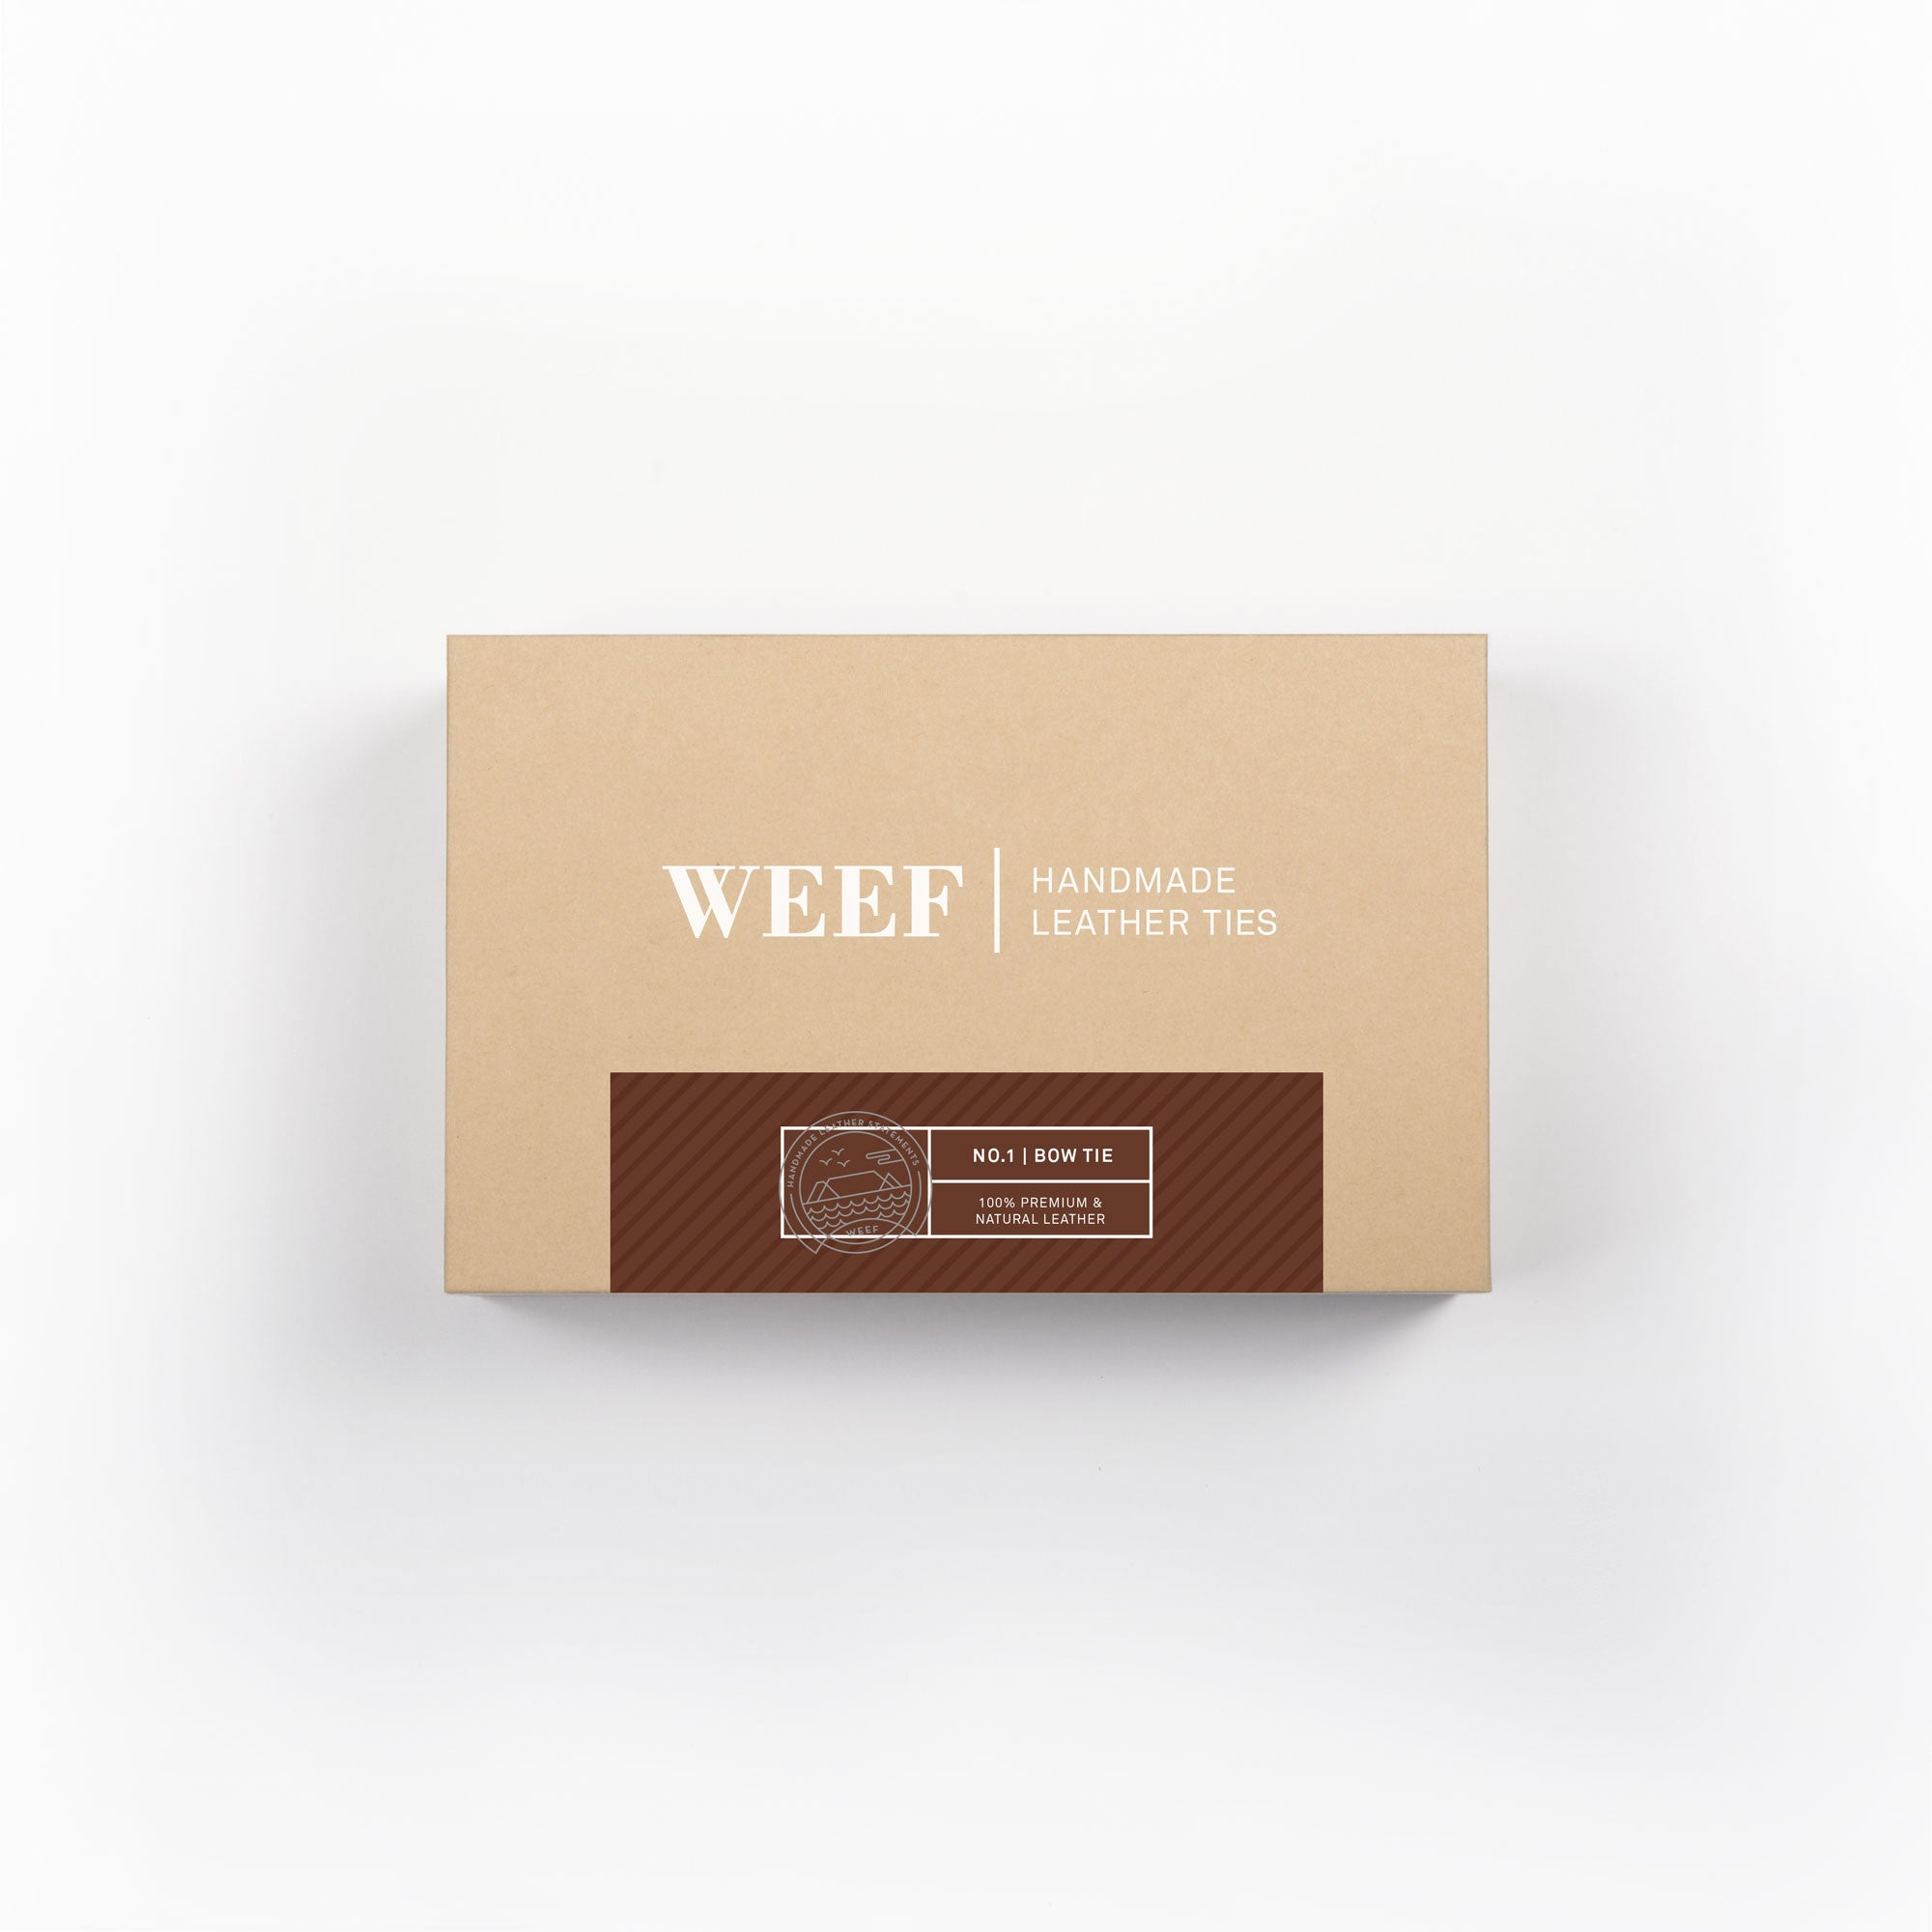 This is the premium packaging box of the charley brown WEEF handmade leather bow tie.